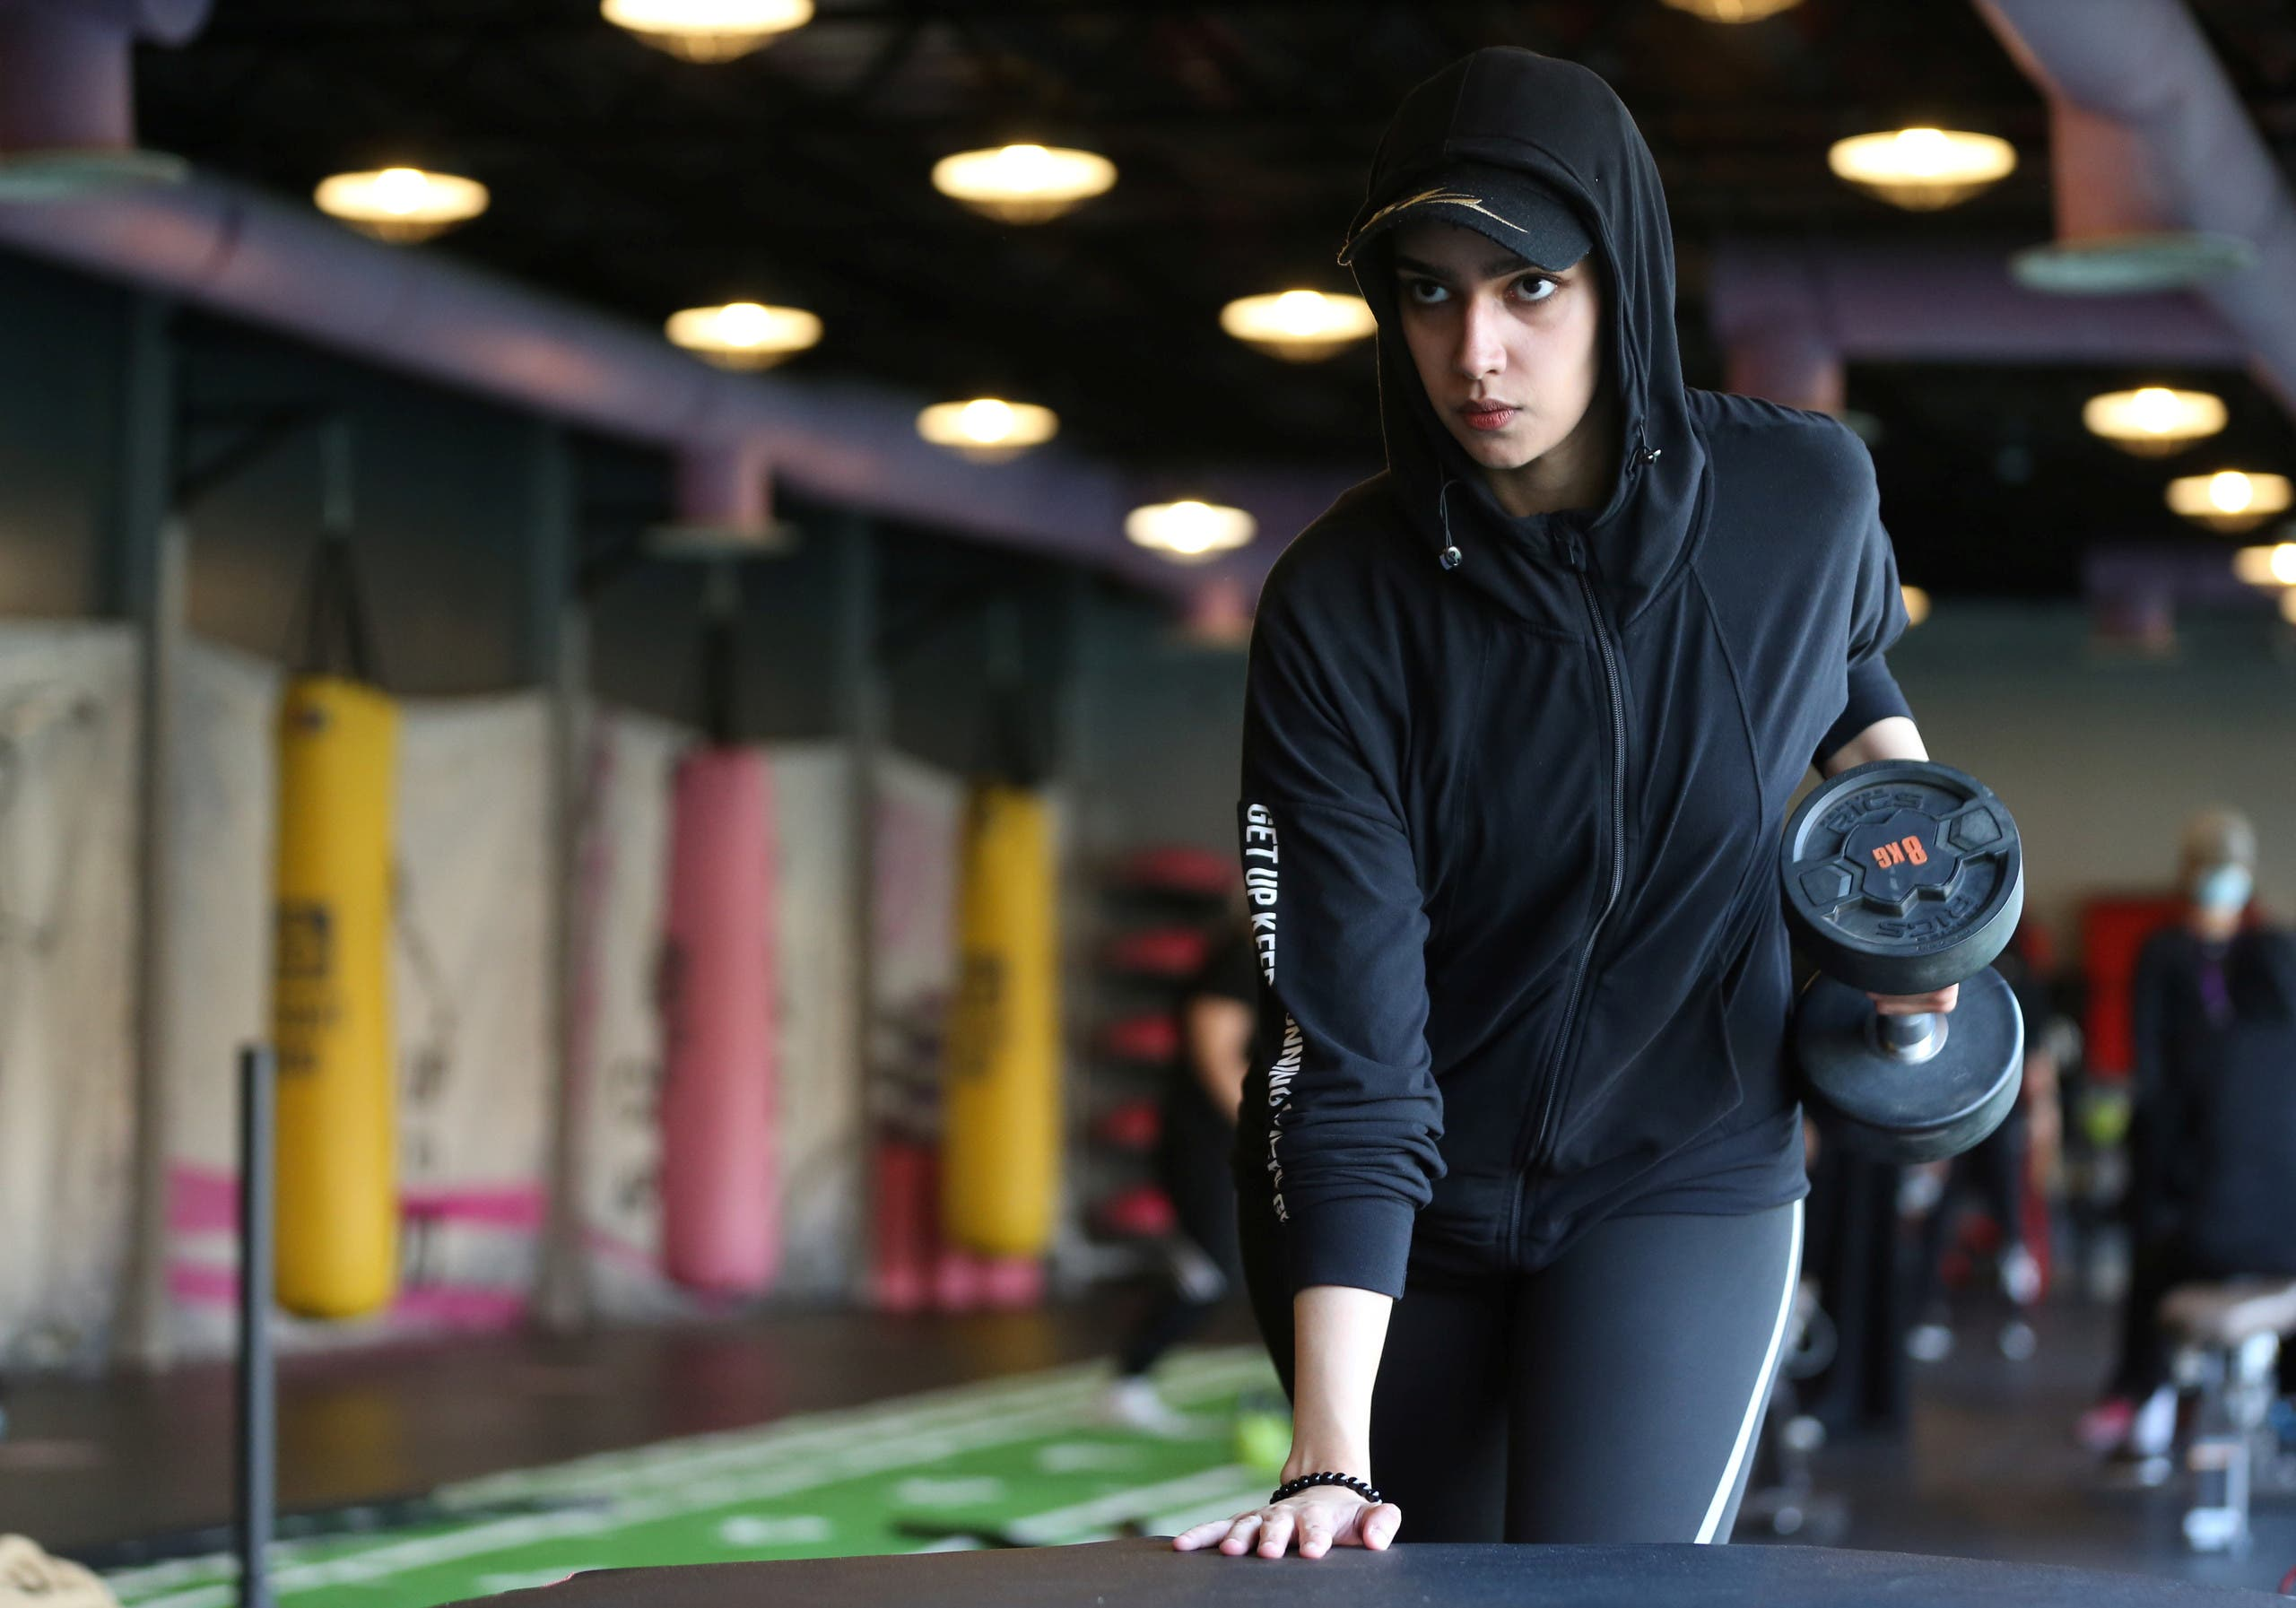 A Saudi woman, Fayrouz Al-Omari, works out at a gym, amid the spread of the coronavirus disease (COVID-19), in Riyadh, Saudi Arabia September 24, 2020. (Reuters)